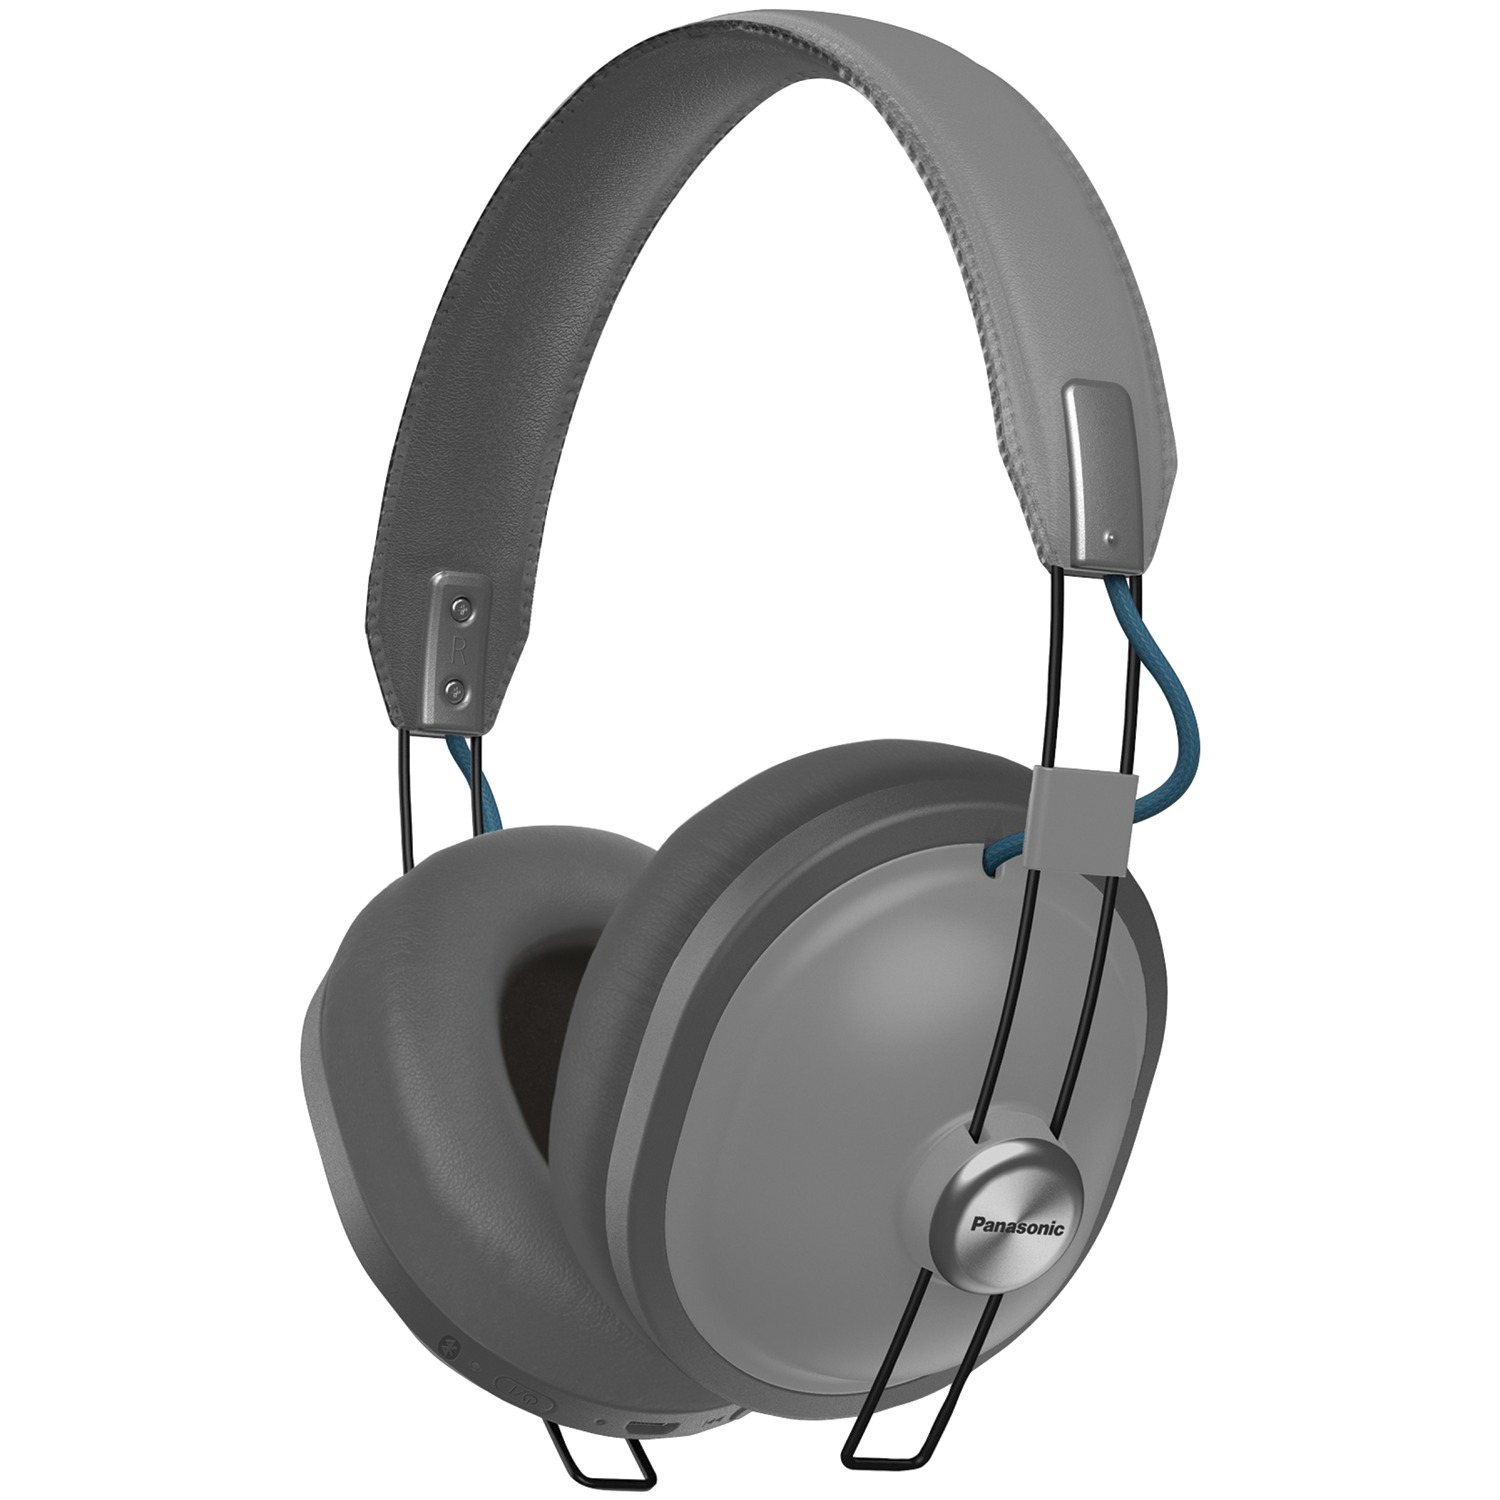 Panasonic RP-HTX80B-H Retro Bluetooth Over-Ear Headphones (Matte Steel)